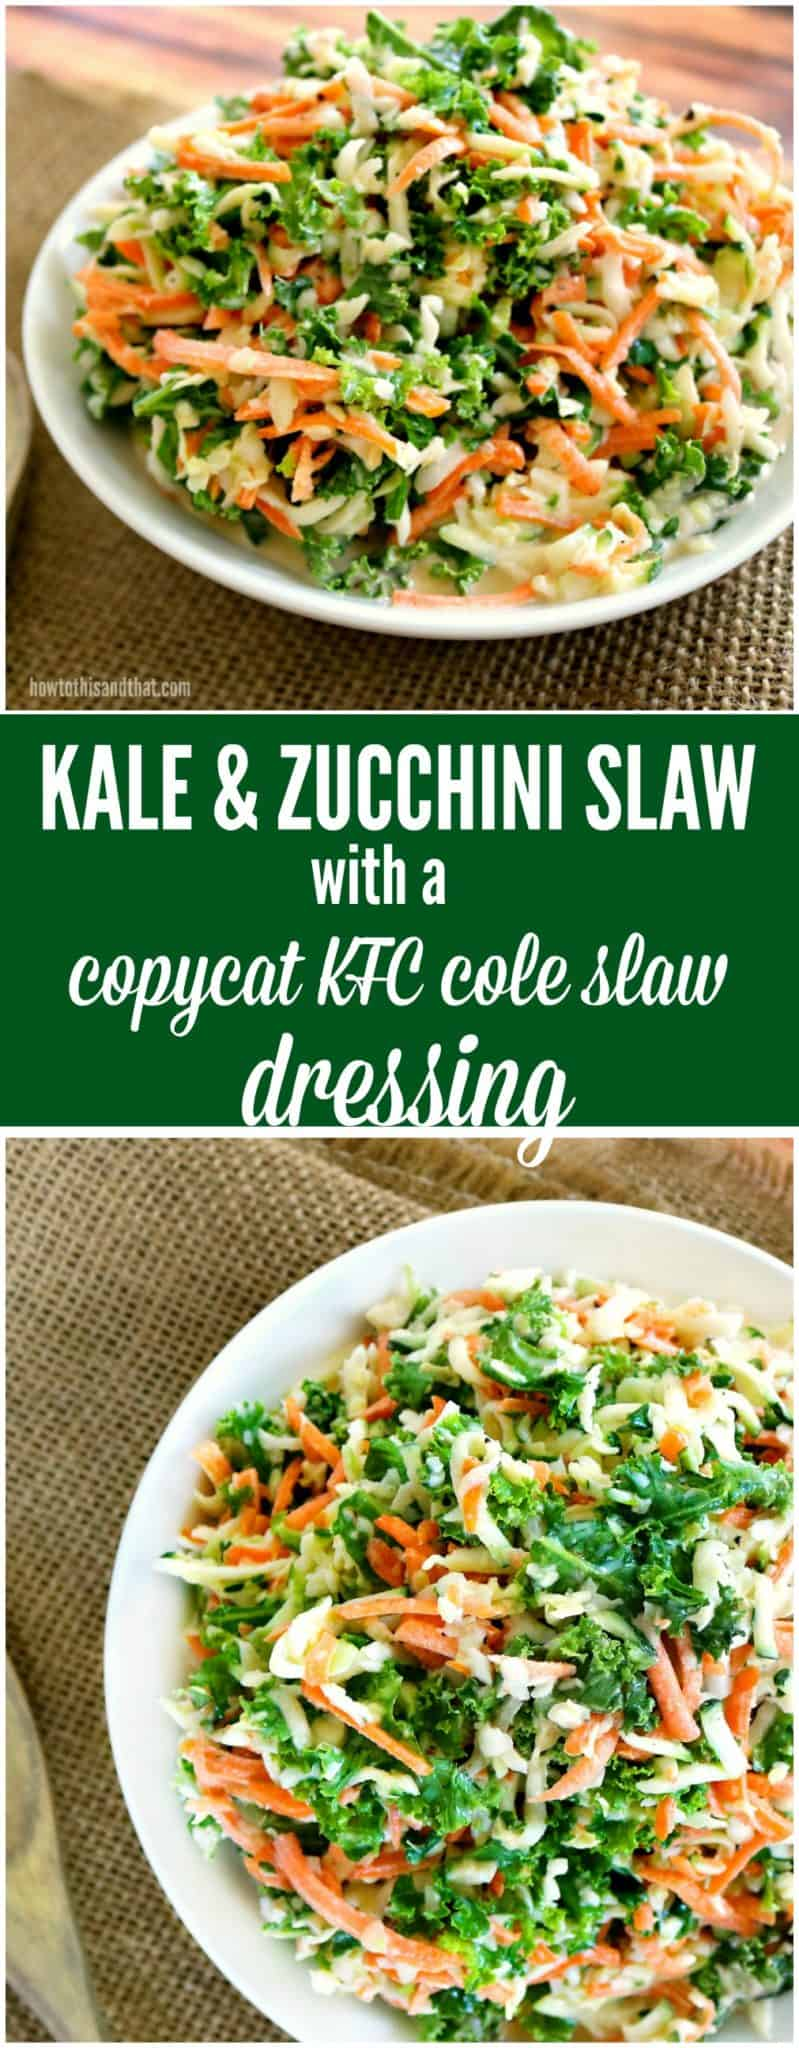 kale slaw with copycat kfc dressing recipe